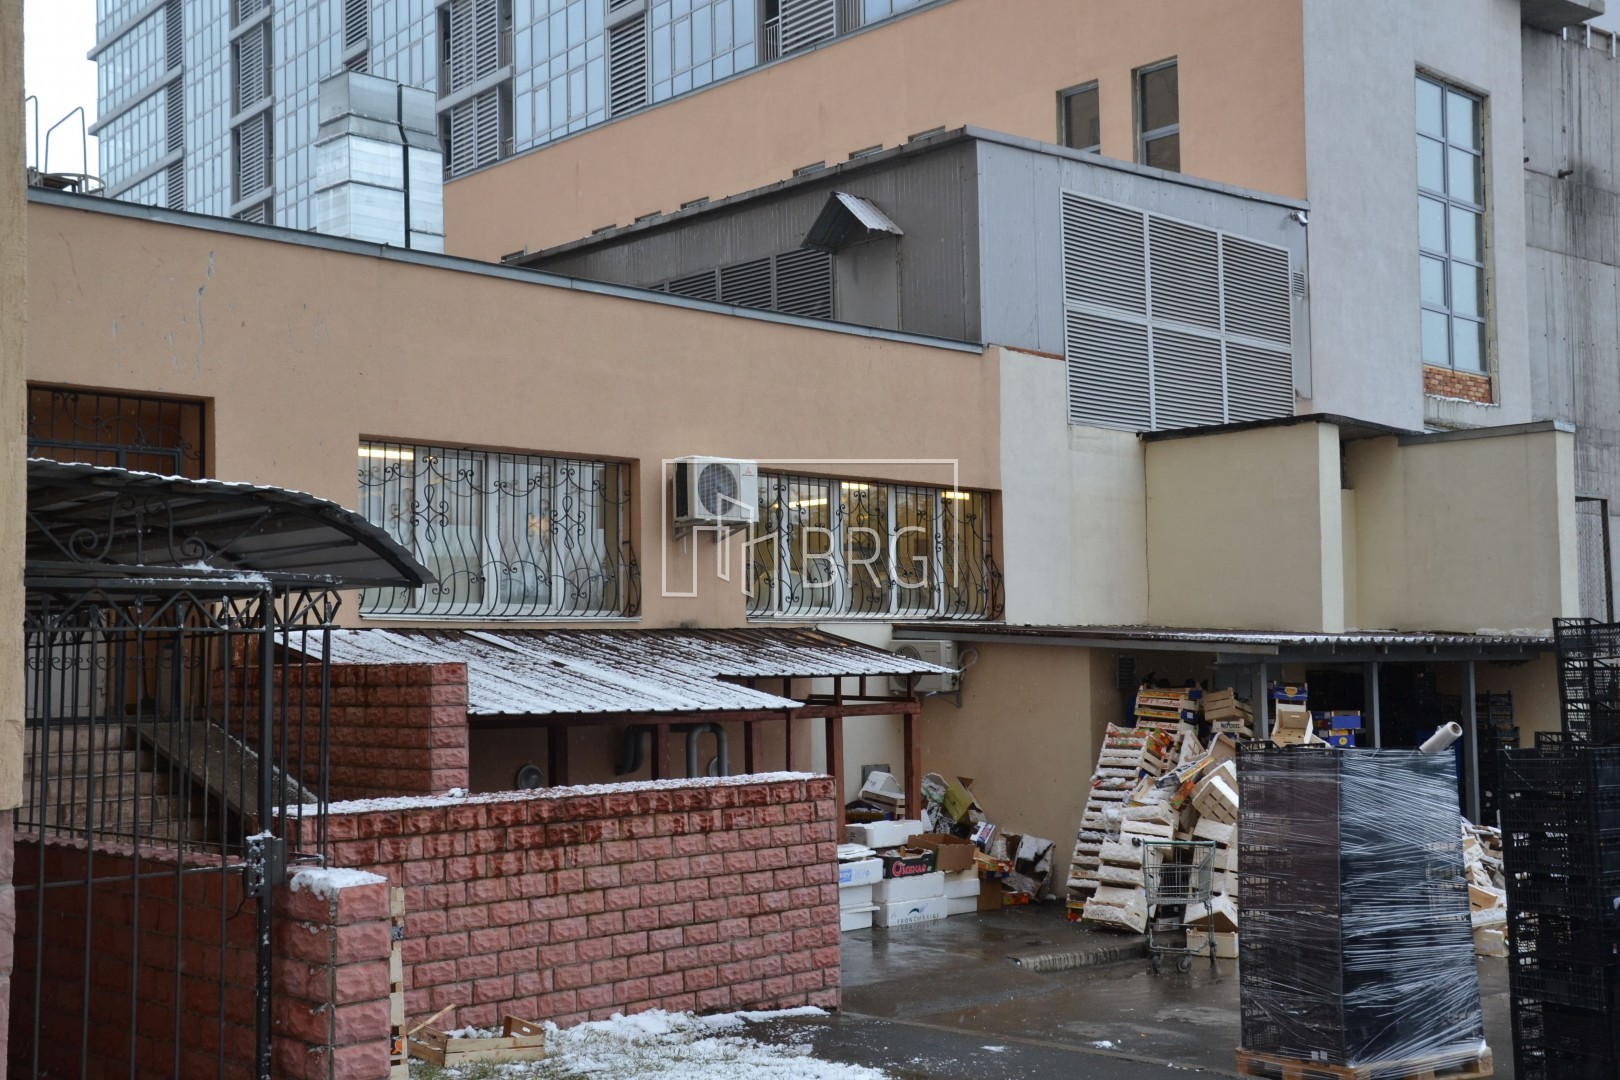 Sale of a shopping mall in the Dnipro district. Kiev